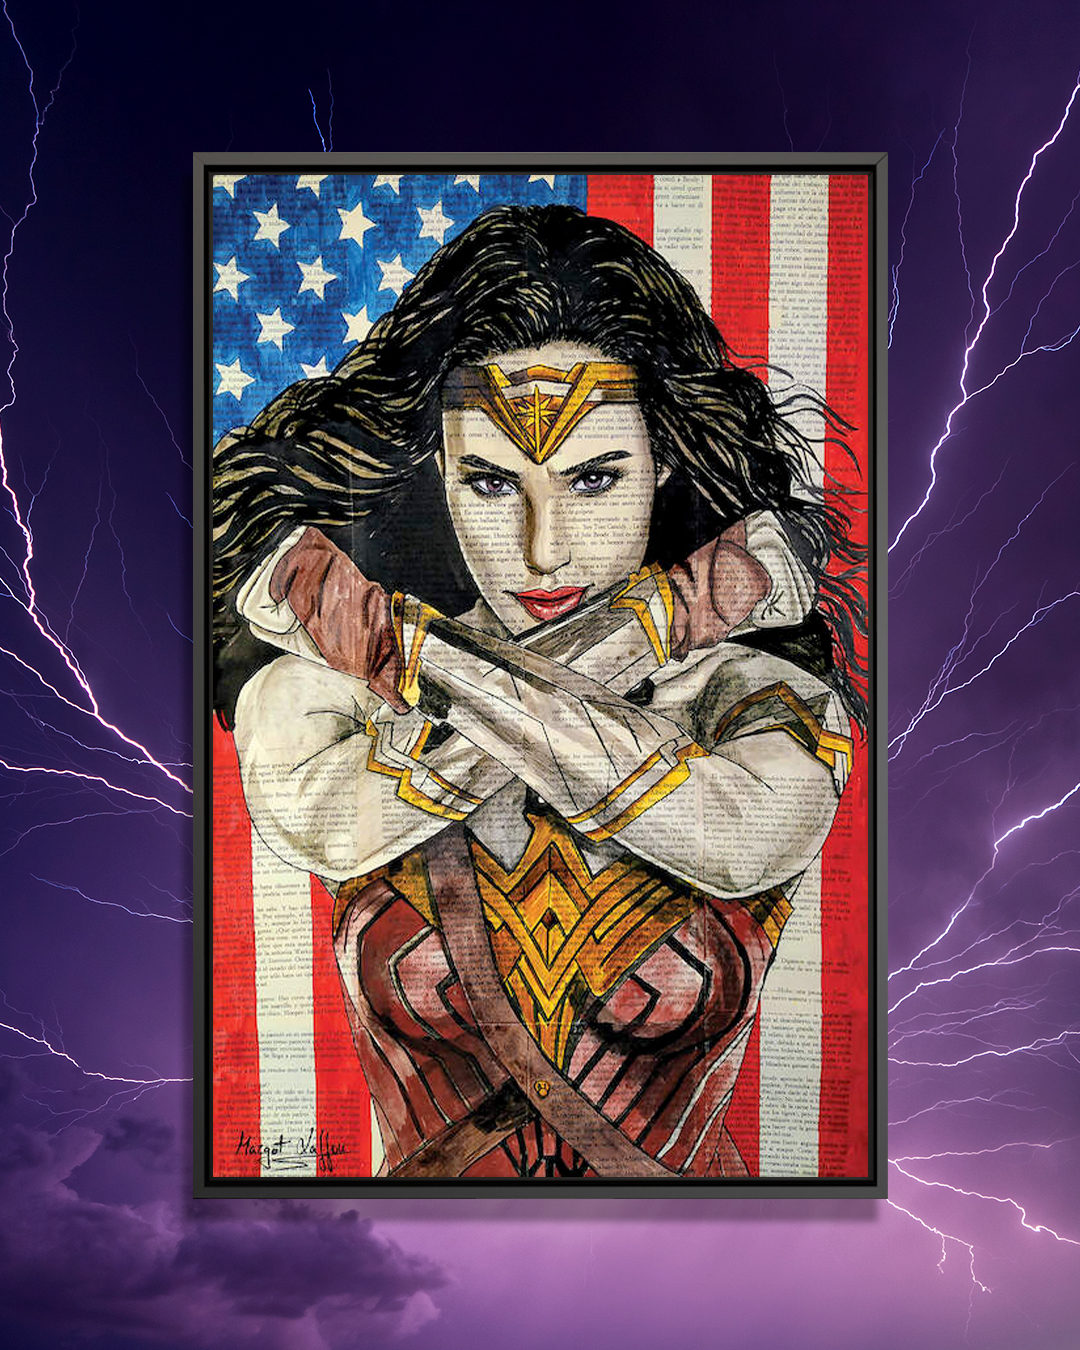 """Wonder Woman"" by Margot Laffon shows a portrait of Wonder Woman against an American flag."